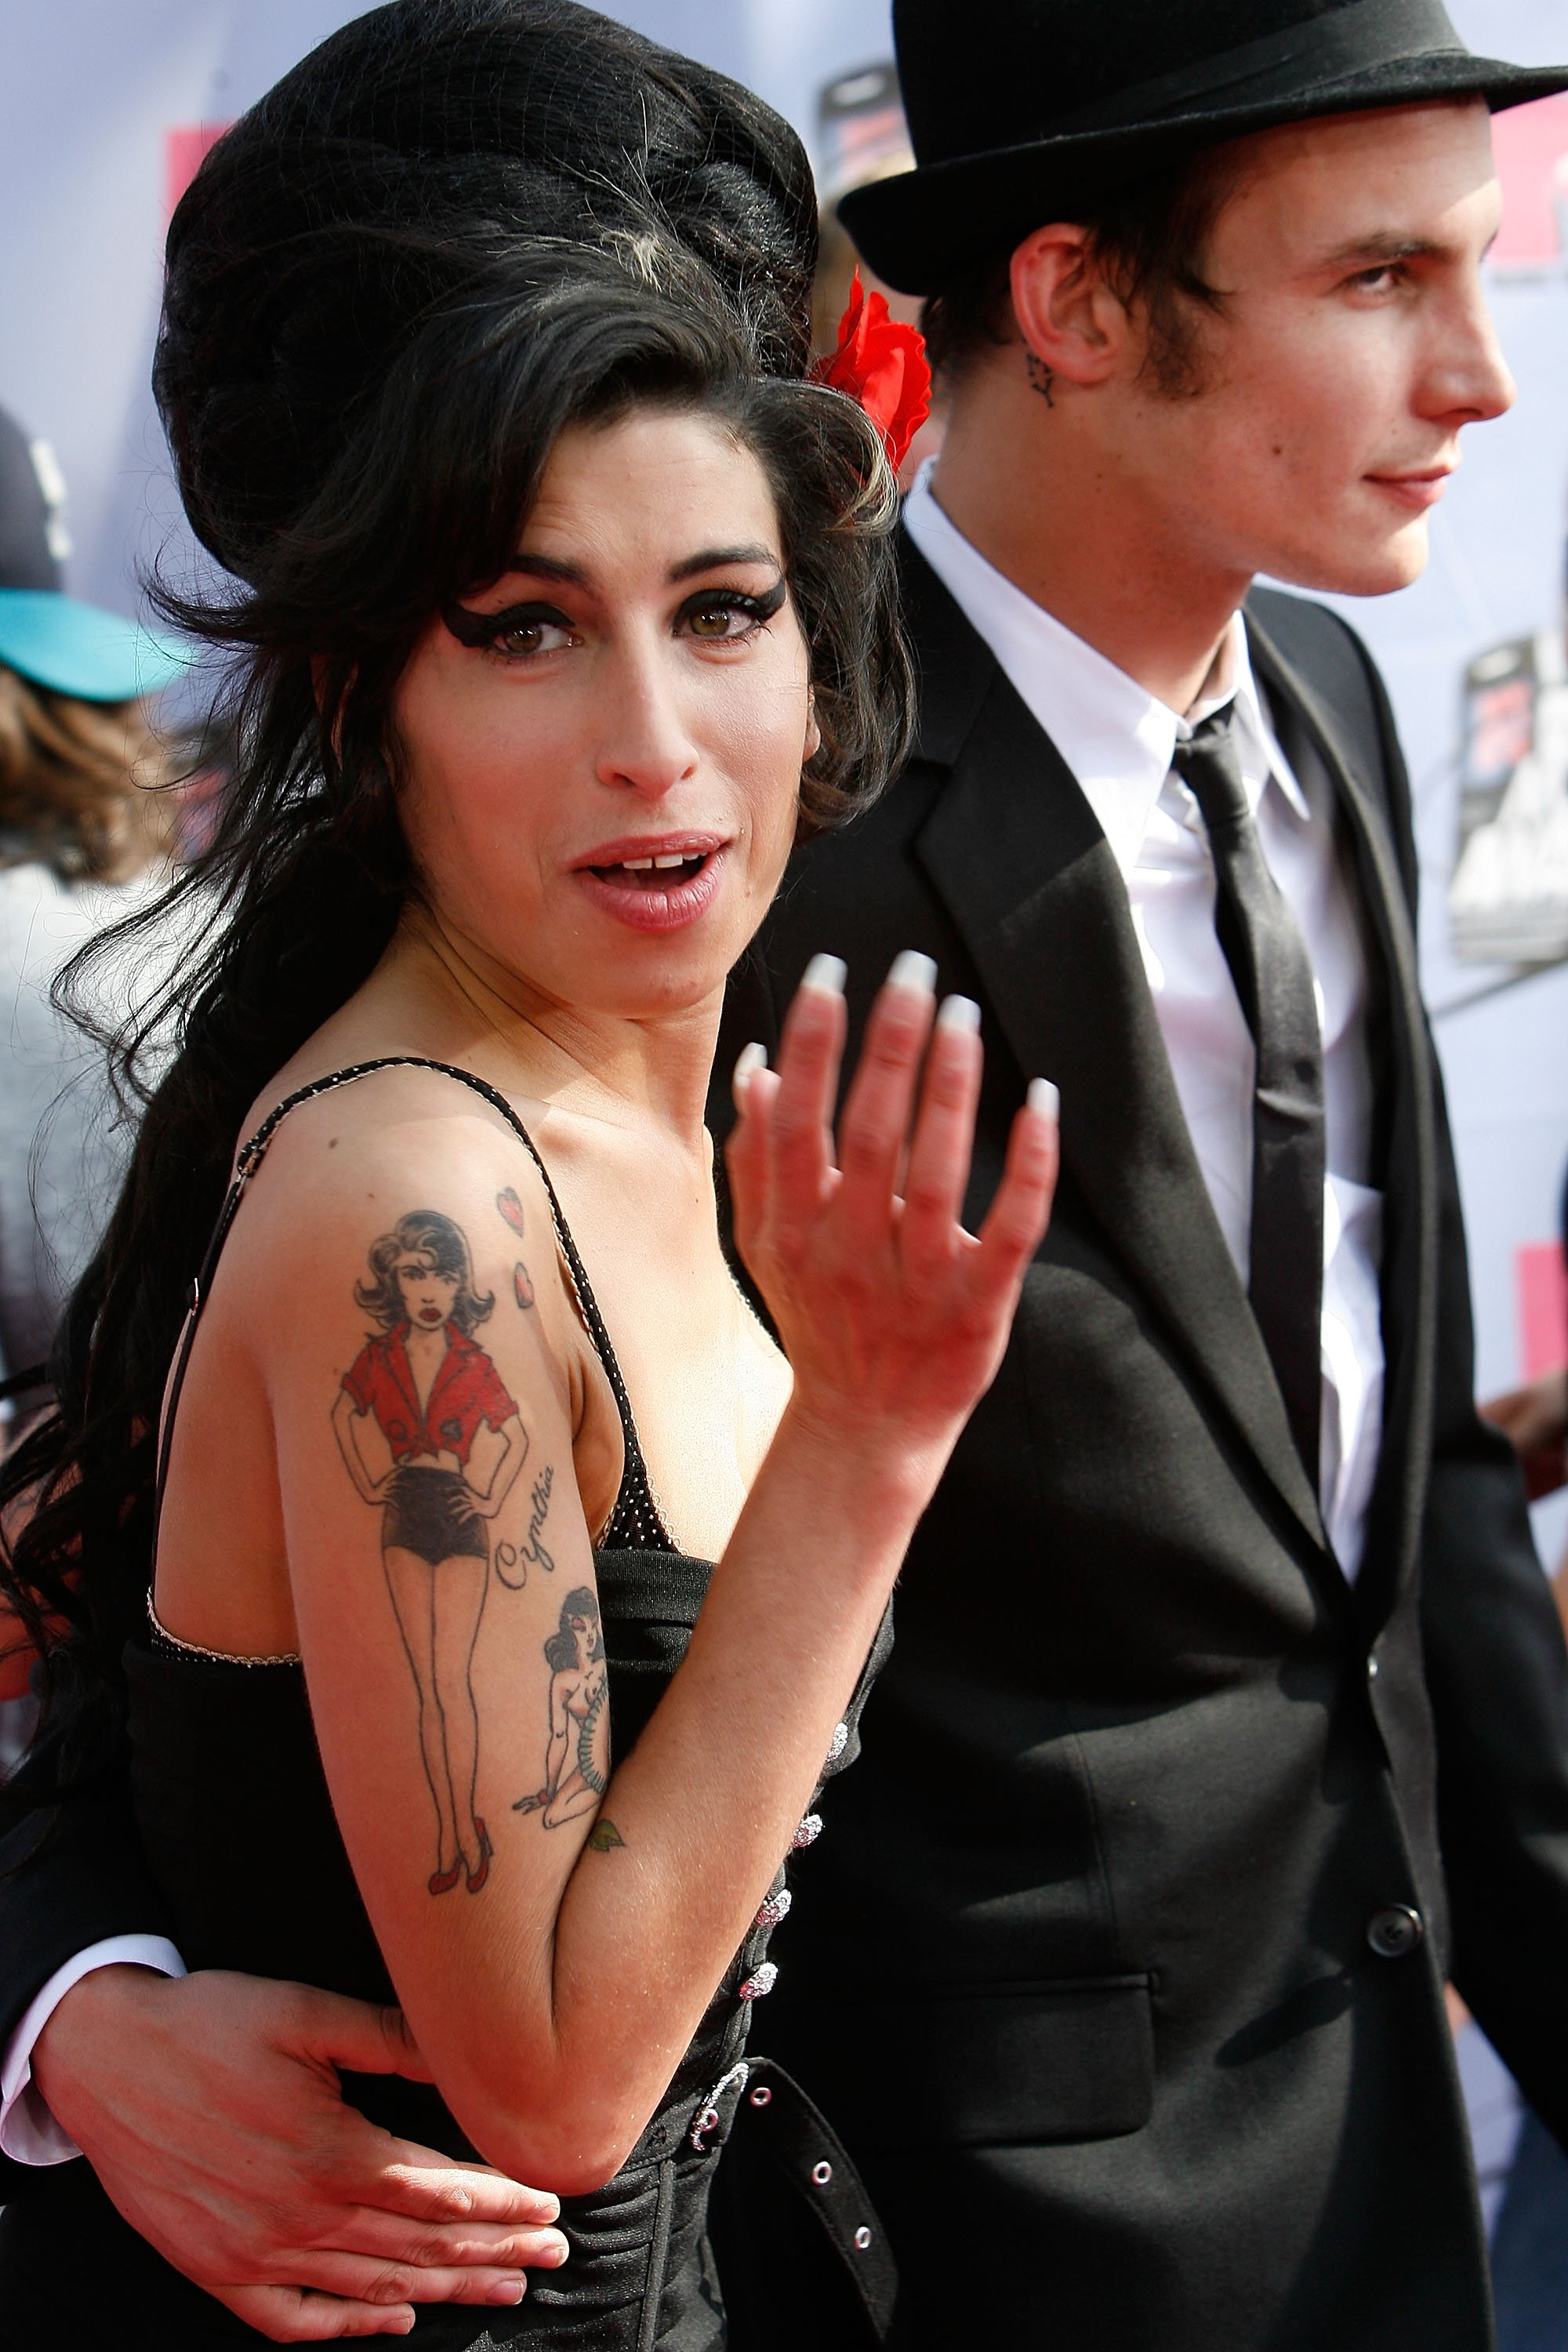 Amy Winehouse and Blake Fielder-Civil arrive to the 2007 MTV Movie Awards at the Gibson Amphitheatre on June 3, 2007 in Universal City, California | Photo: Getty Images